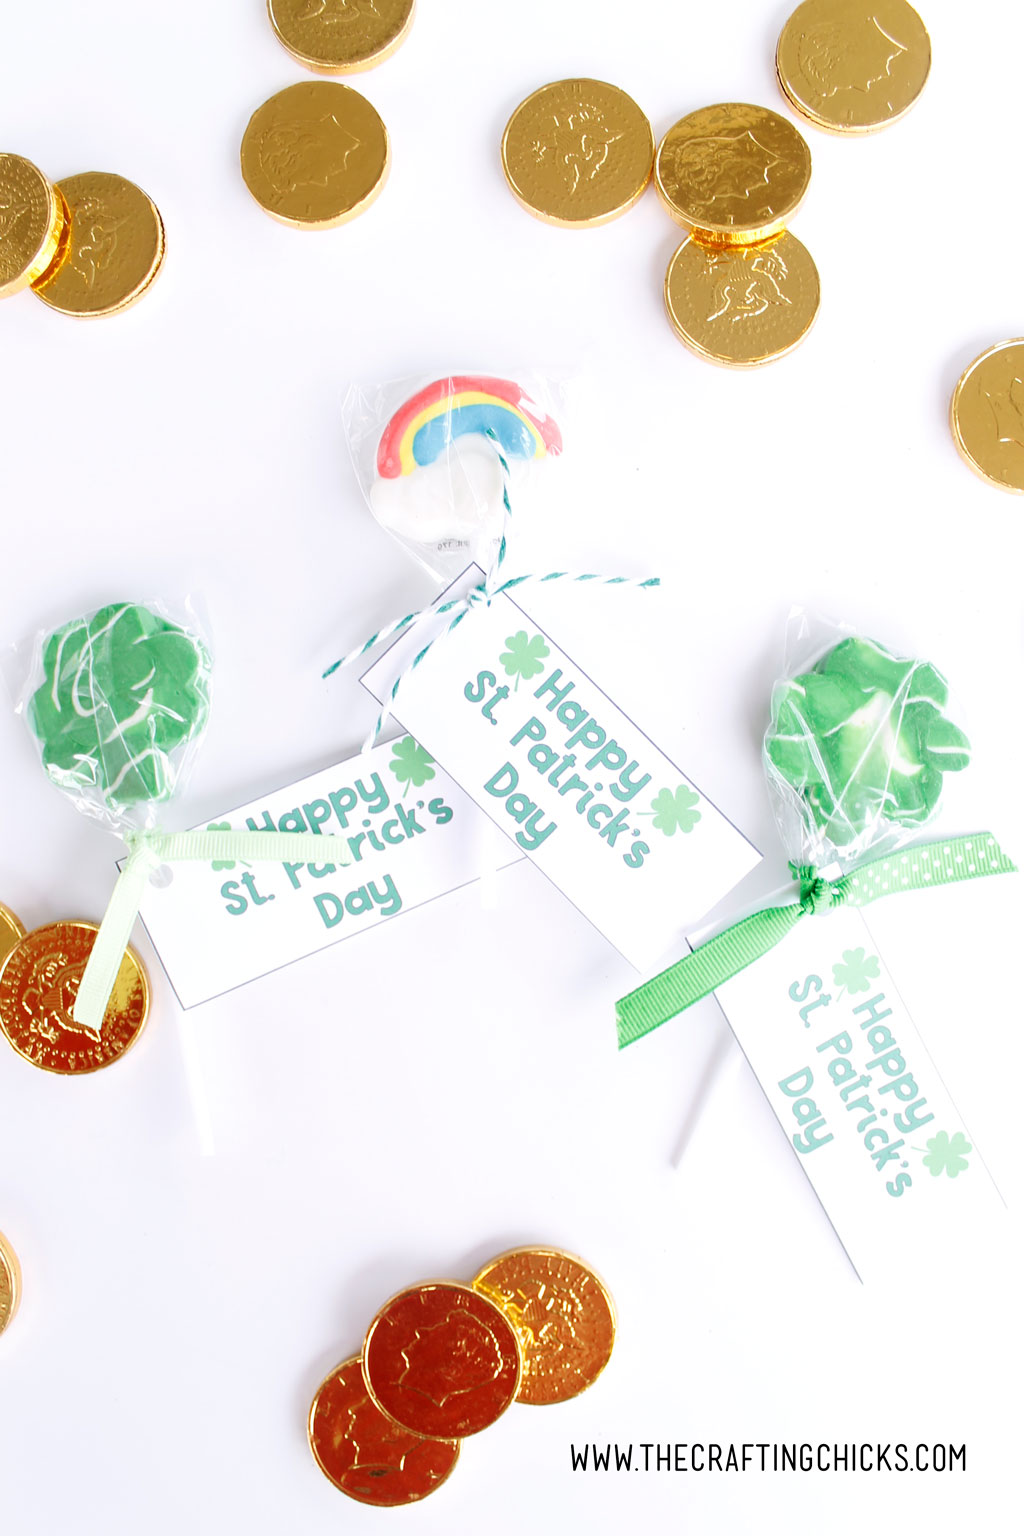 Are you looking for a way to show your friends and family you're lucky to have them this St. Patrick's Day? These adorableSt. Patrick's Day Treat Tags are the perfect way. Print them out and add them to any gift.